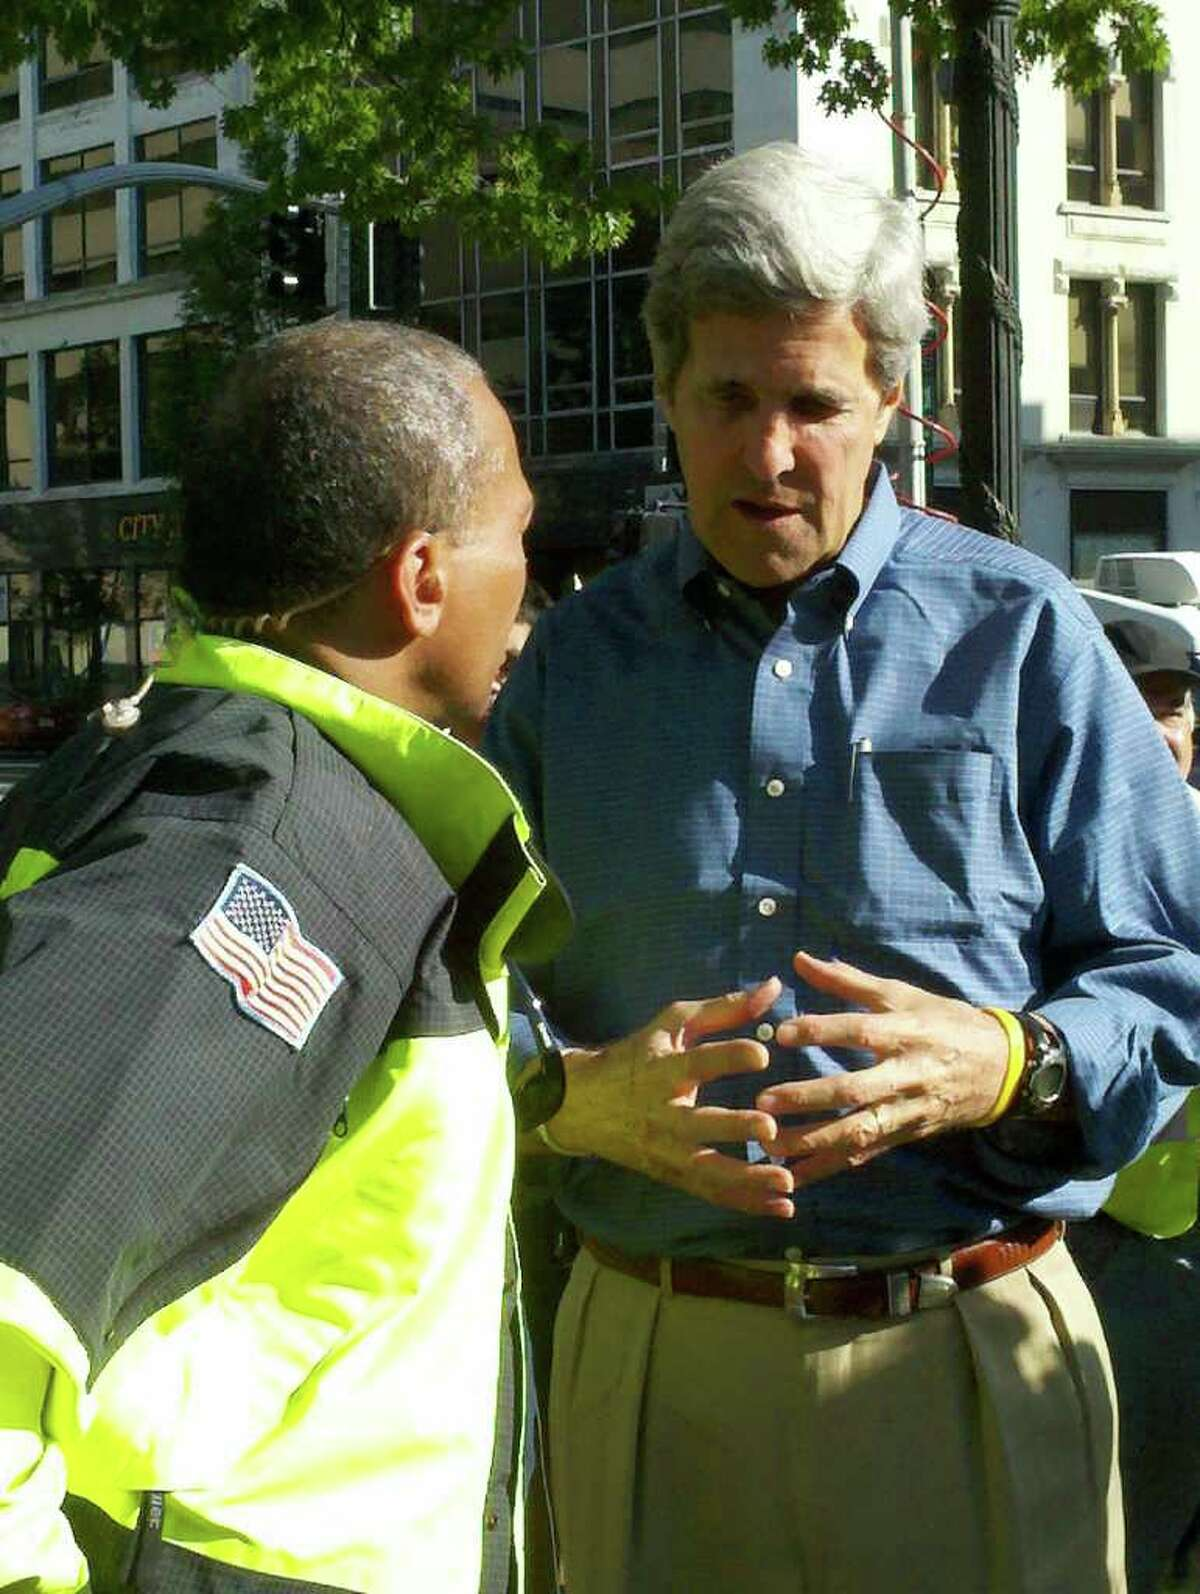 Massachusetts Gov. Deval Patrick, left, speaks to Sen. John Kerry, D-Mass., on Thursday, a day after massive tornadoes killed four people and damaged or destroyed homes and businesses in western Massachusetts. (Dayelin Roman / Times Union)